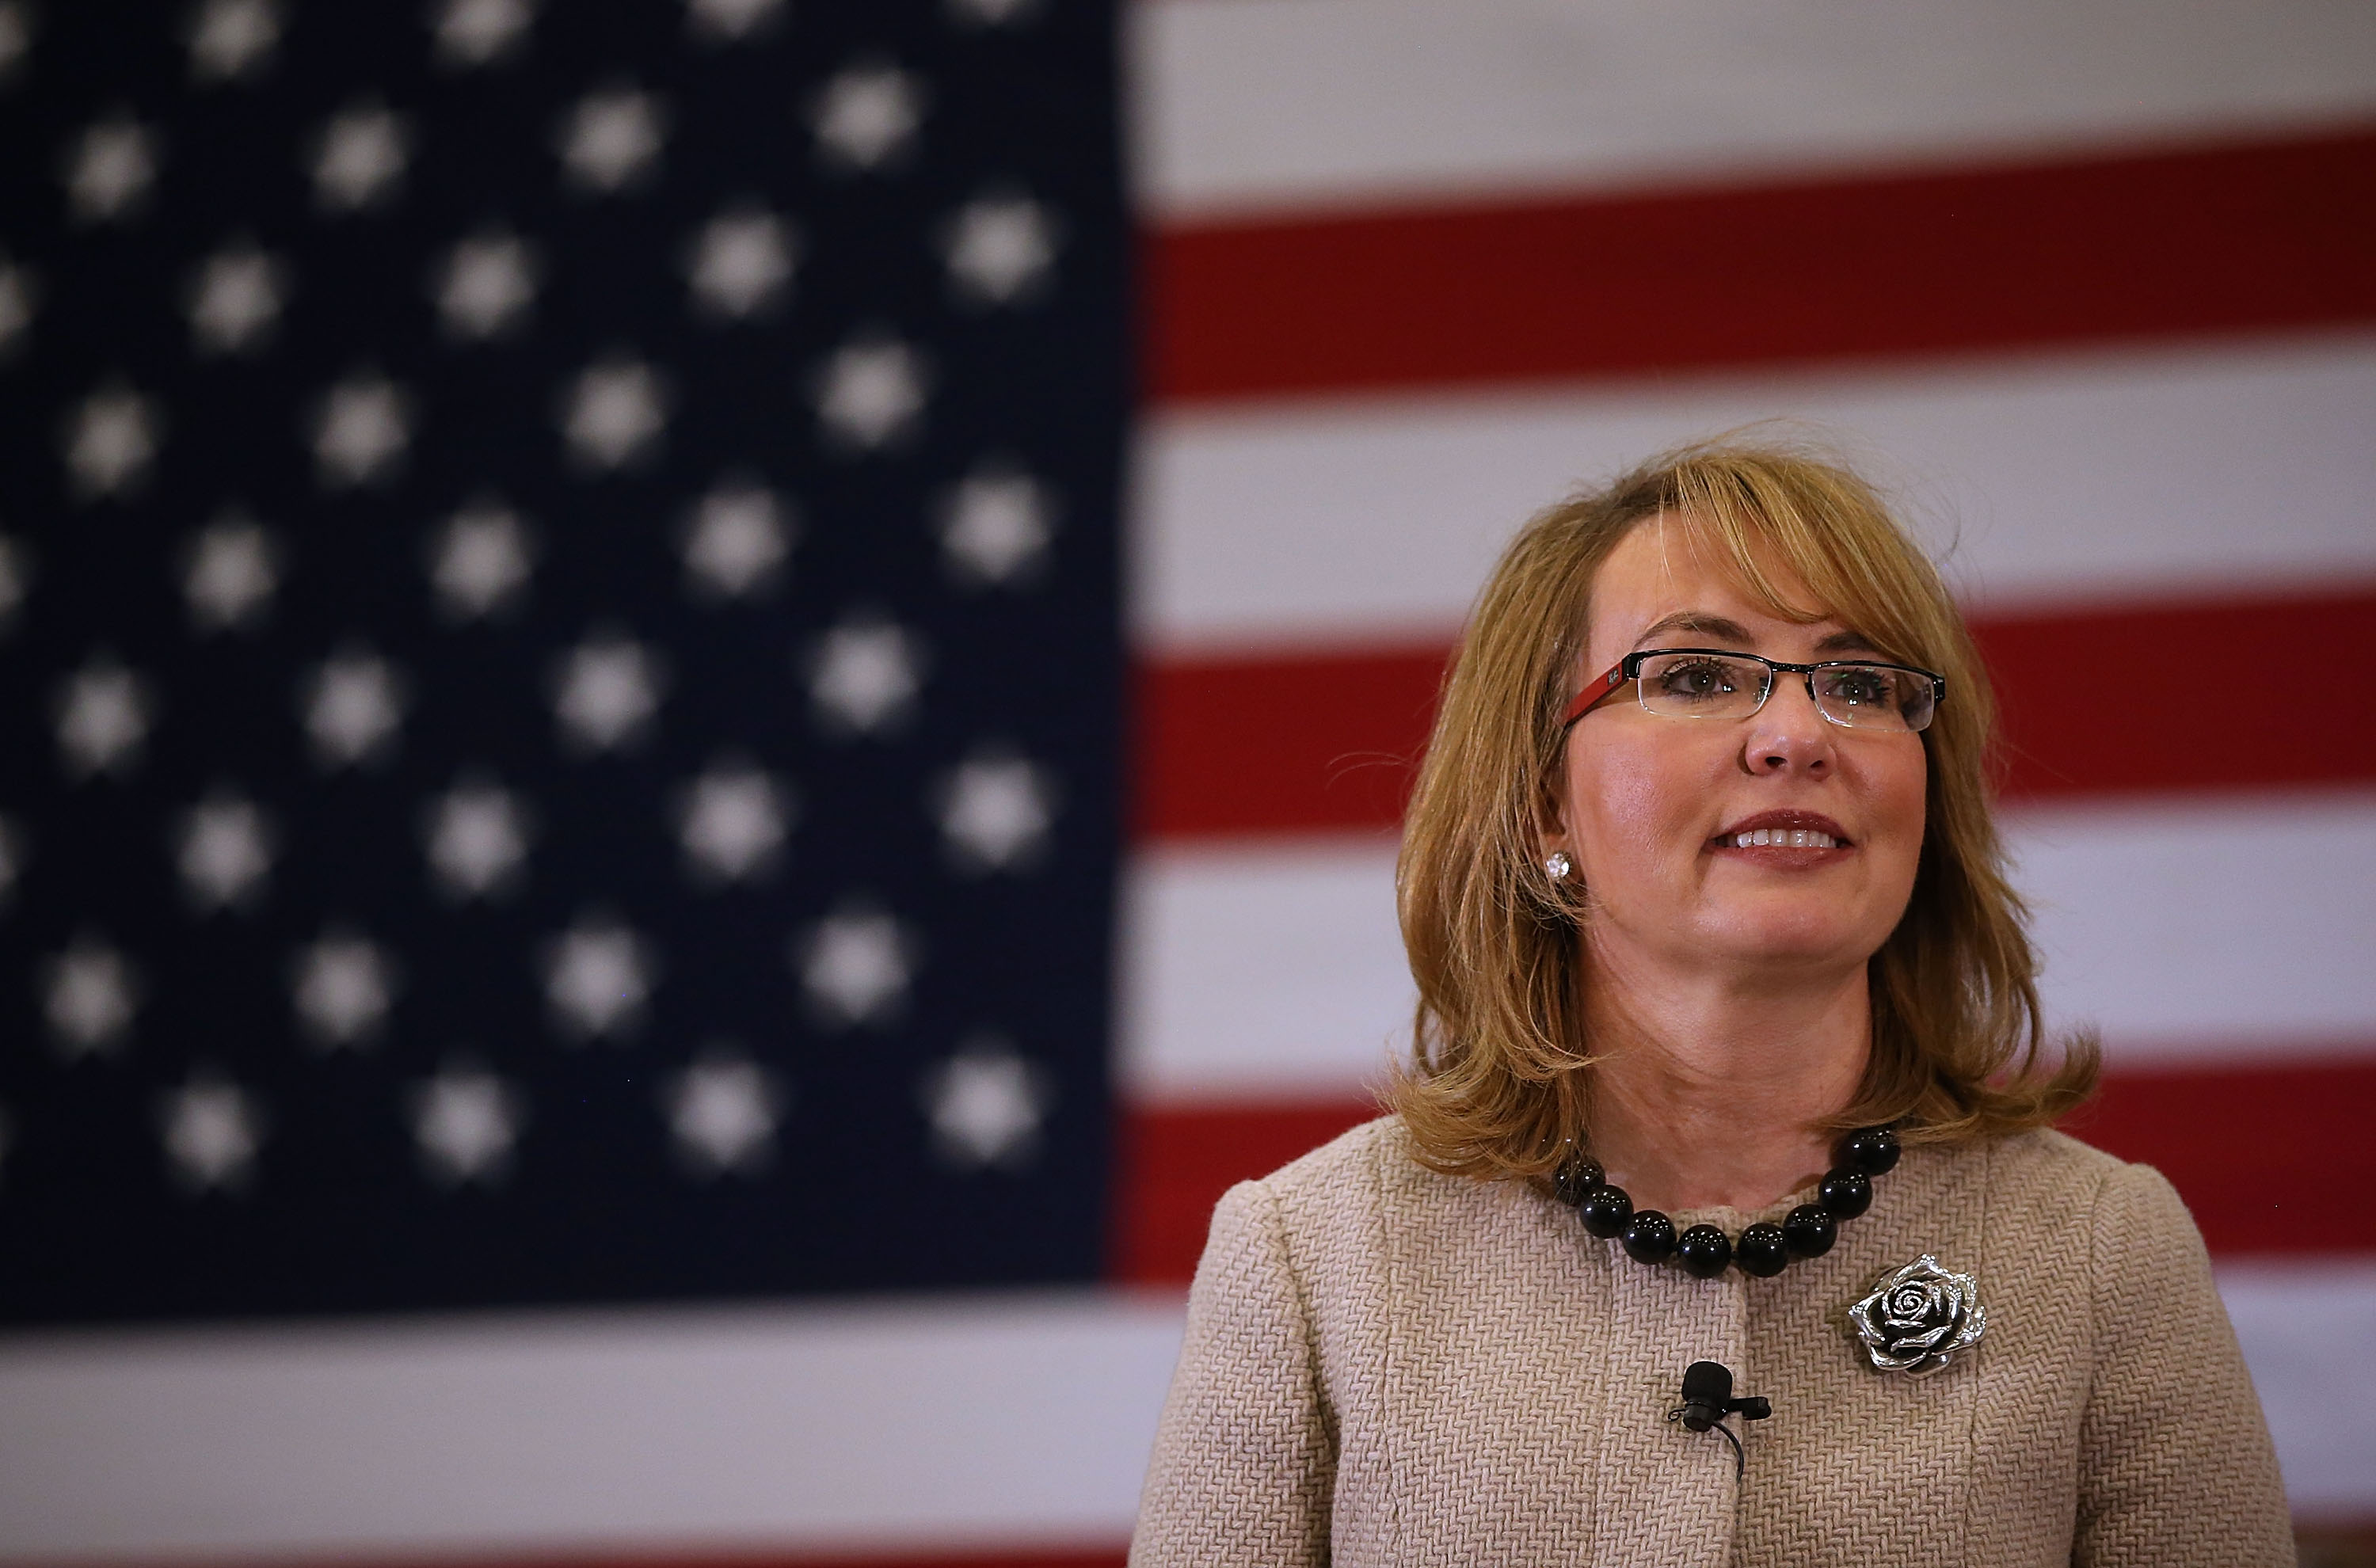 Former Rep. Gabrielle Giffords (D-AZ) looks on as democratic presidential candidate  Hillary Clinton speaks during a  get out the vote  event on Feb. 2, in Hampton, New Hampshire.